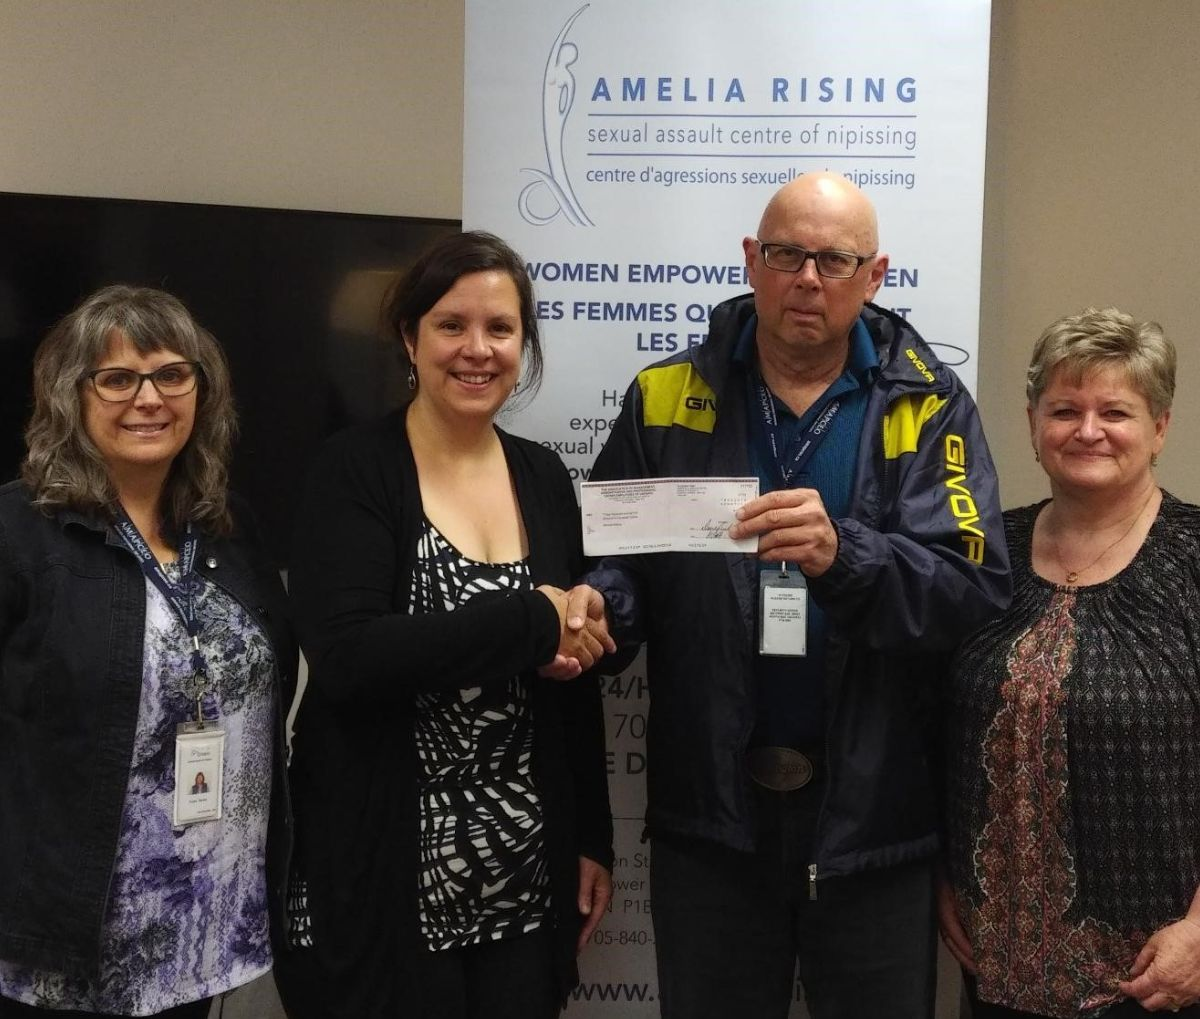 AMAPCEO member Tammy Porter, Brigitte Lebel, Amelia Rising Executive Director, and AMAPCEO members Michael Bennison and Tammy Porter, all from North Bay